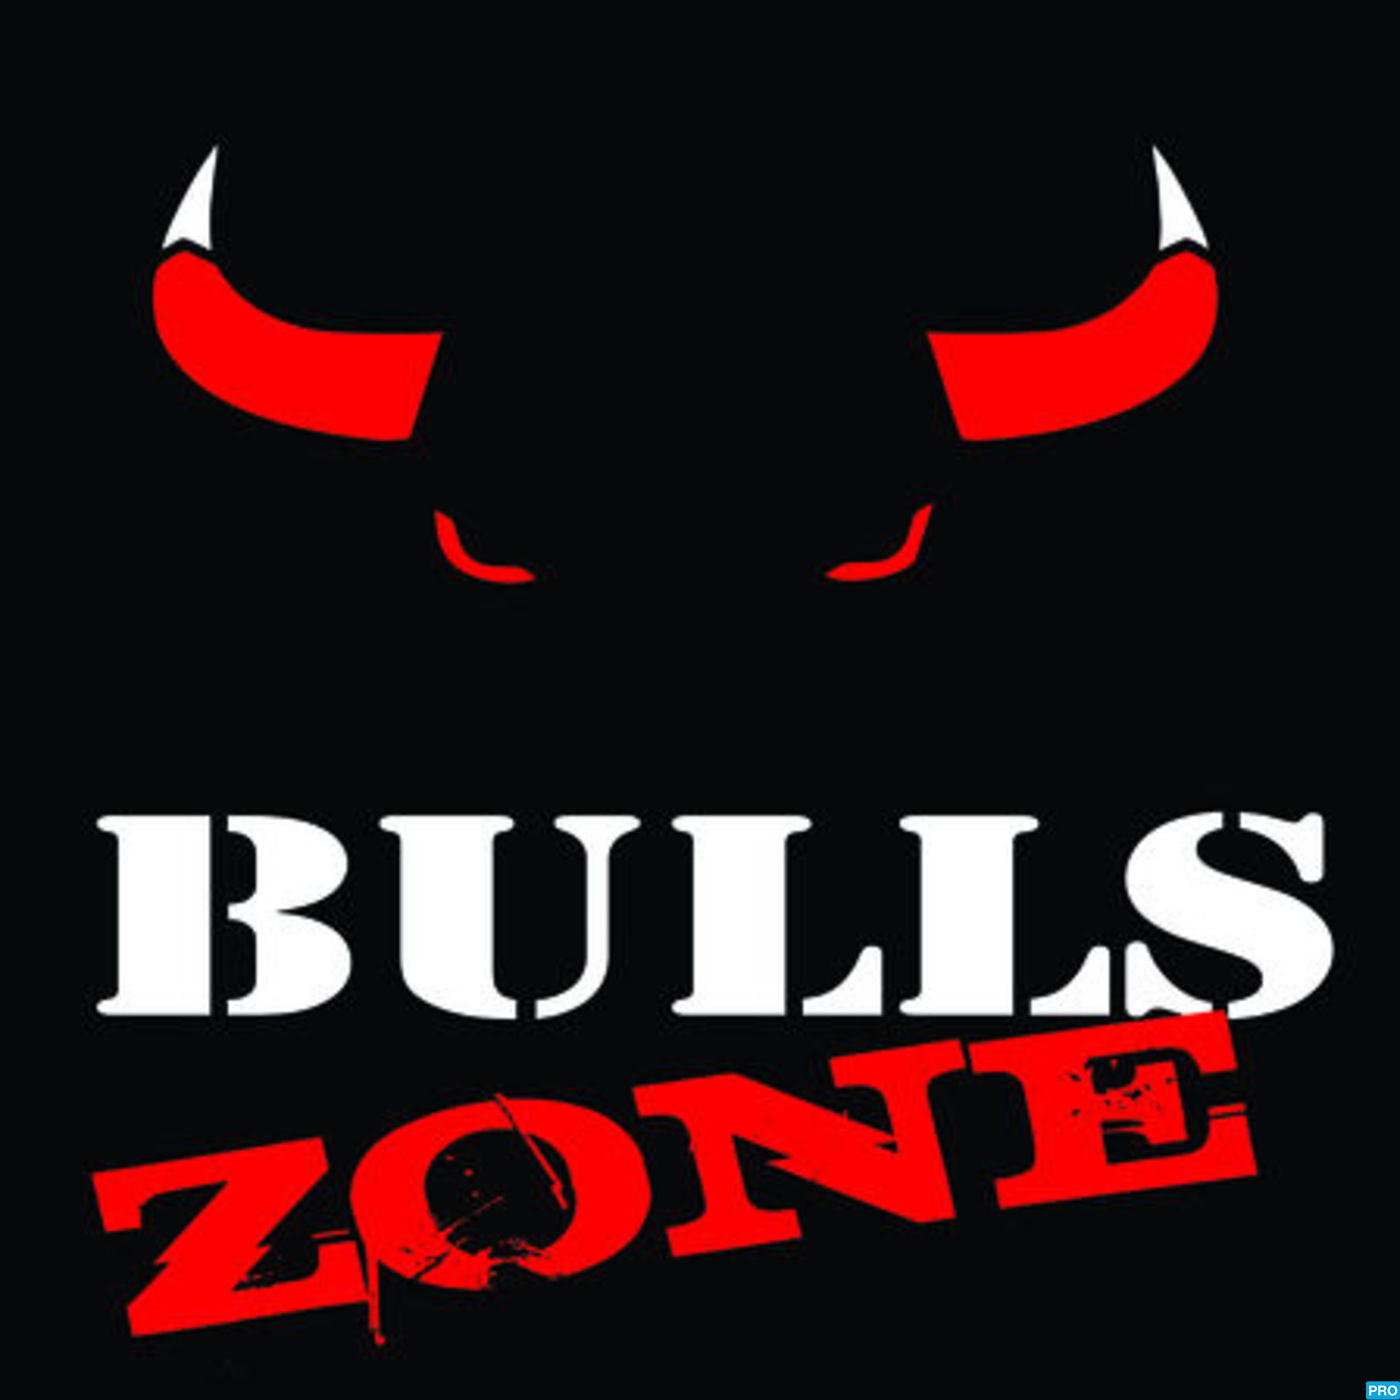 Chicago Bulls Zone